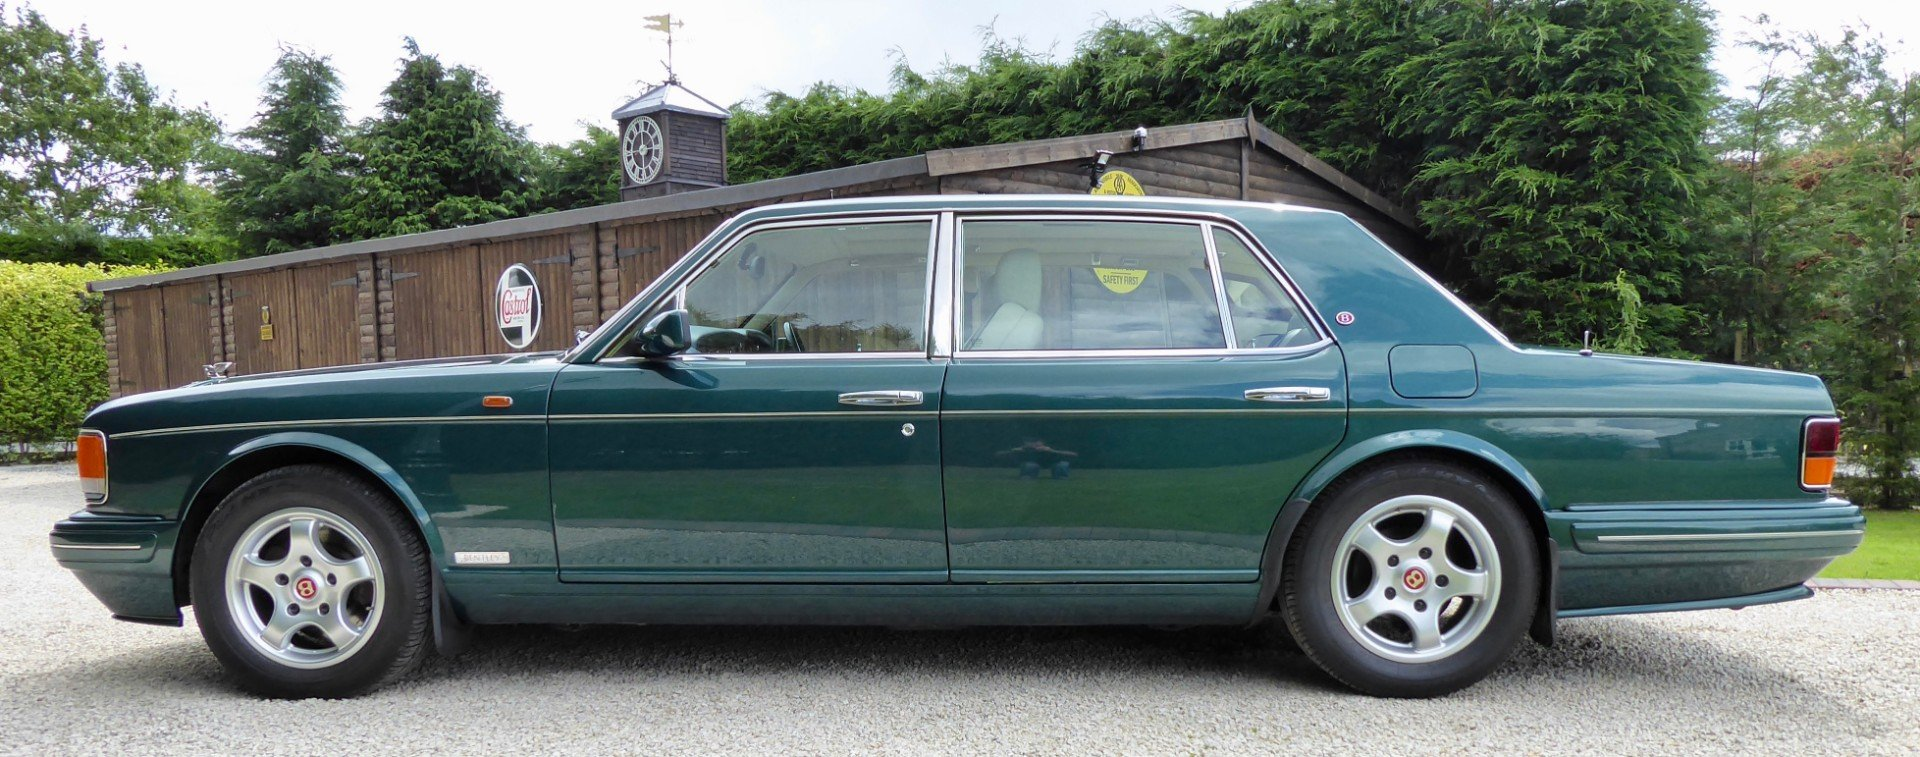 1997 Bentley Turbo RT   ( 28,700 miles ) For Sale (picture 2 of 6)